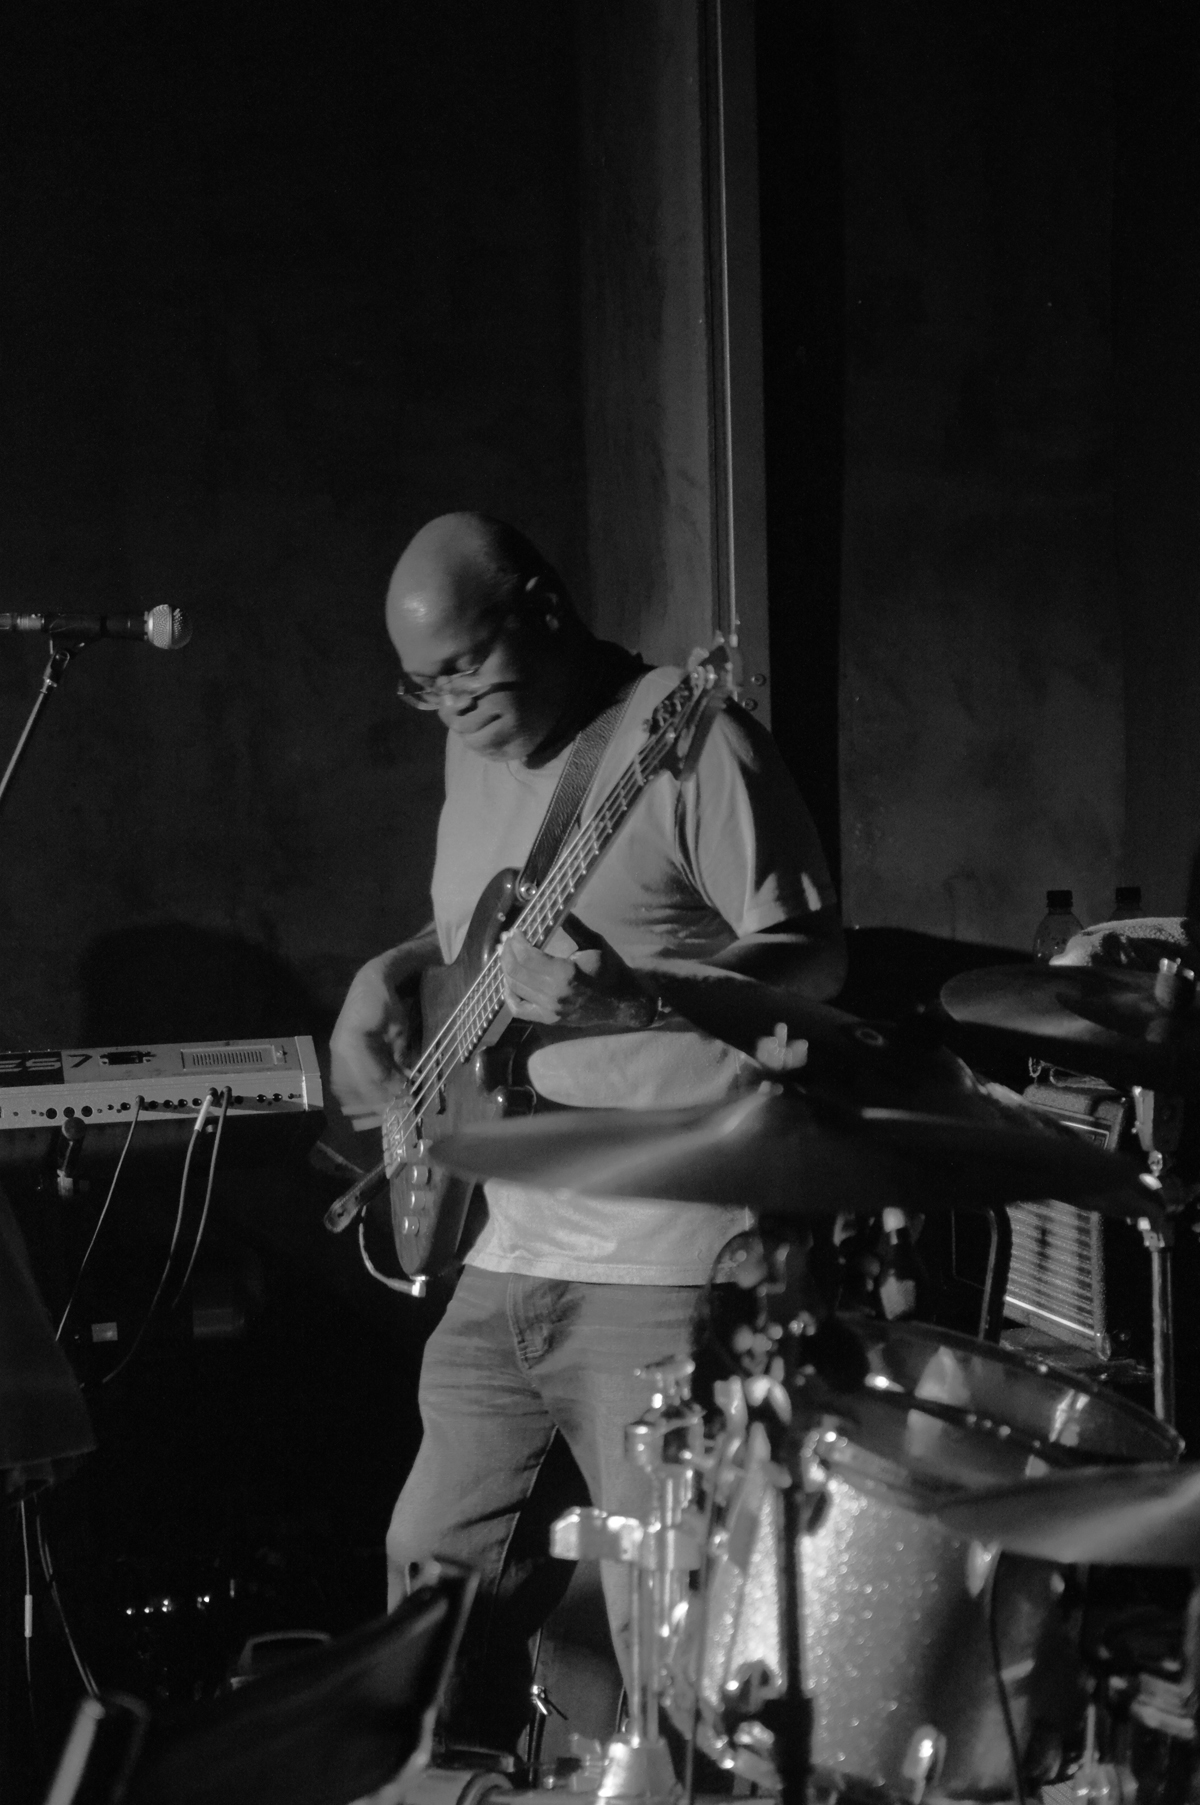 Roy_Ayers_Guitarist_Gary_Dougherty_Planet_Slop